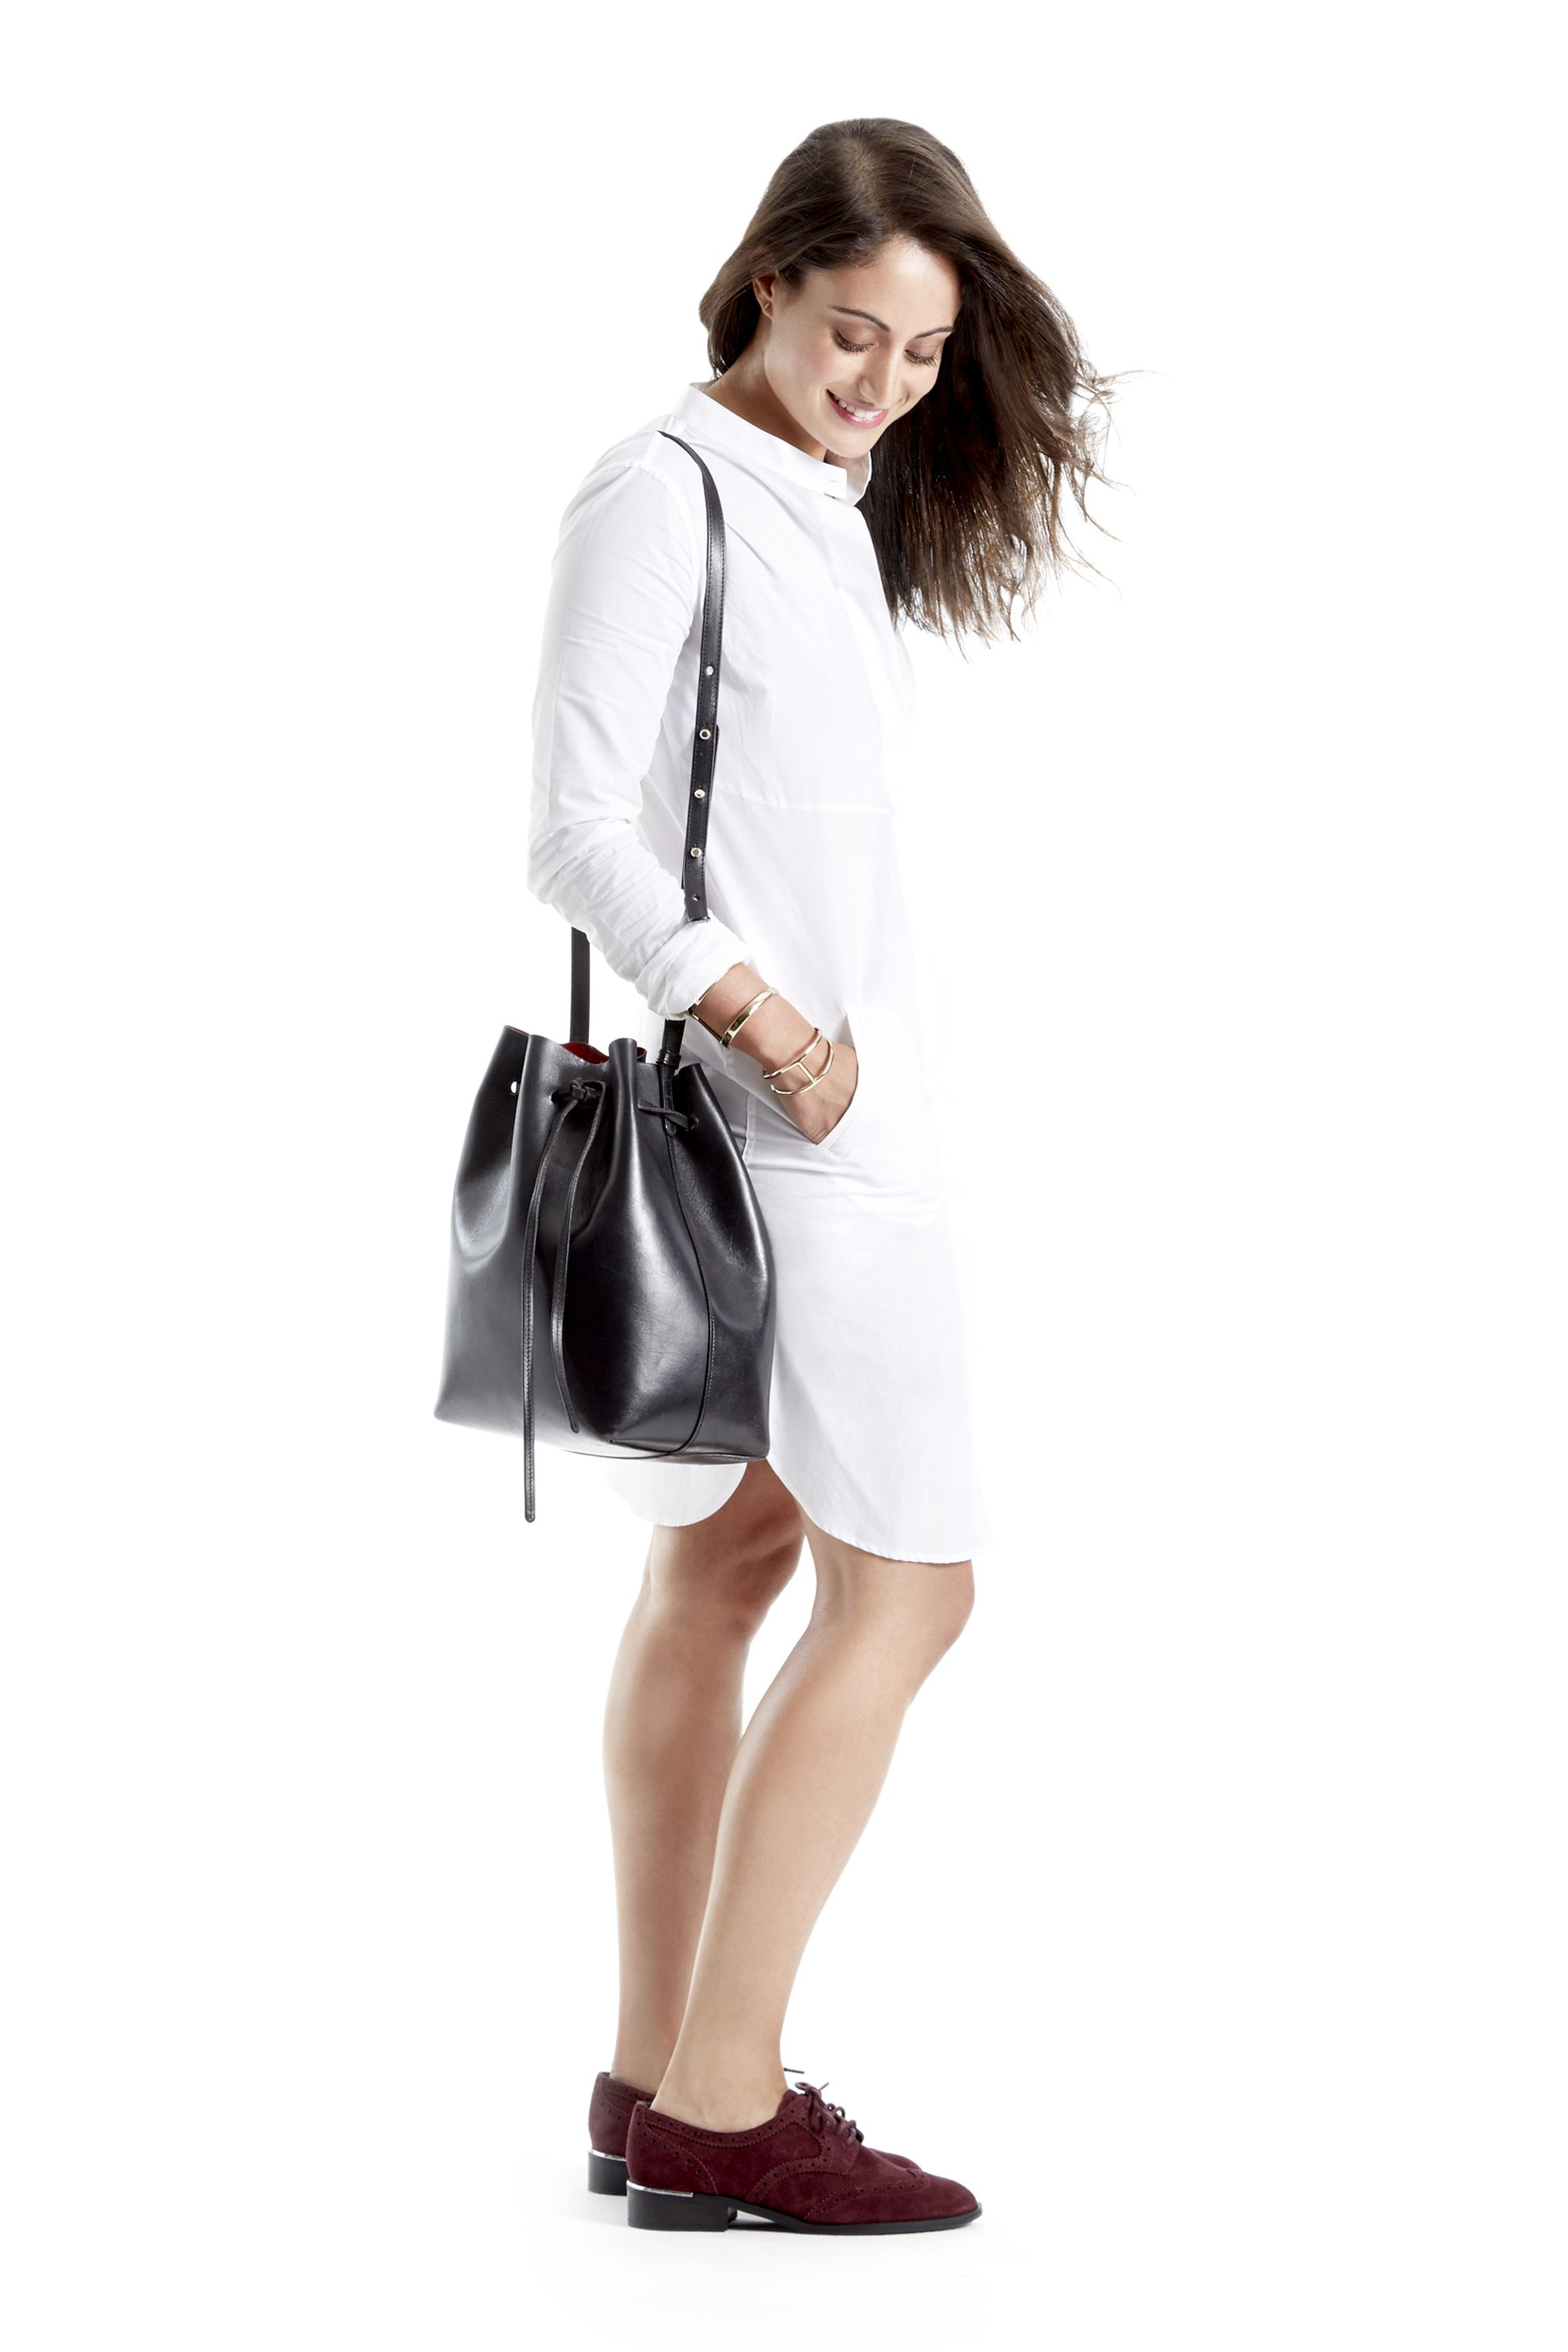 """<p>A day of hitting boutiques on the cobblestone streets calls for serious comfort. """"There's an amazing, energy downtown,"""" says Michelle Fawbush, senior merchandising editor for <em>Harper's Bazaar</em>. """"Classic New York calls for a classic outfit."""" Pair a crisp white shirt dress, an oxford shoe in a pop of color and a stylish bucket bag together for a menswear-inspired look. It's simple, understated and ideal for slipping on and off while trying on clothes.   </p>"""